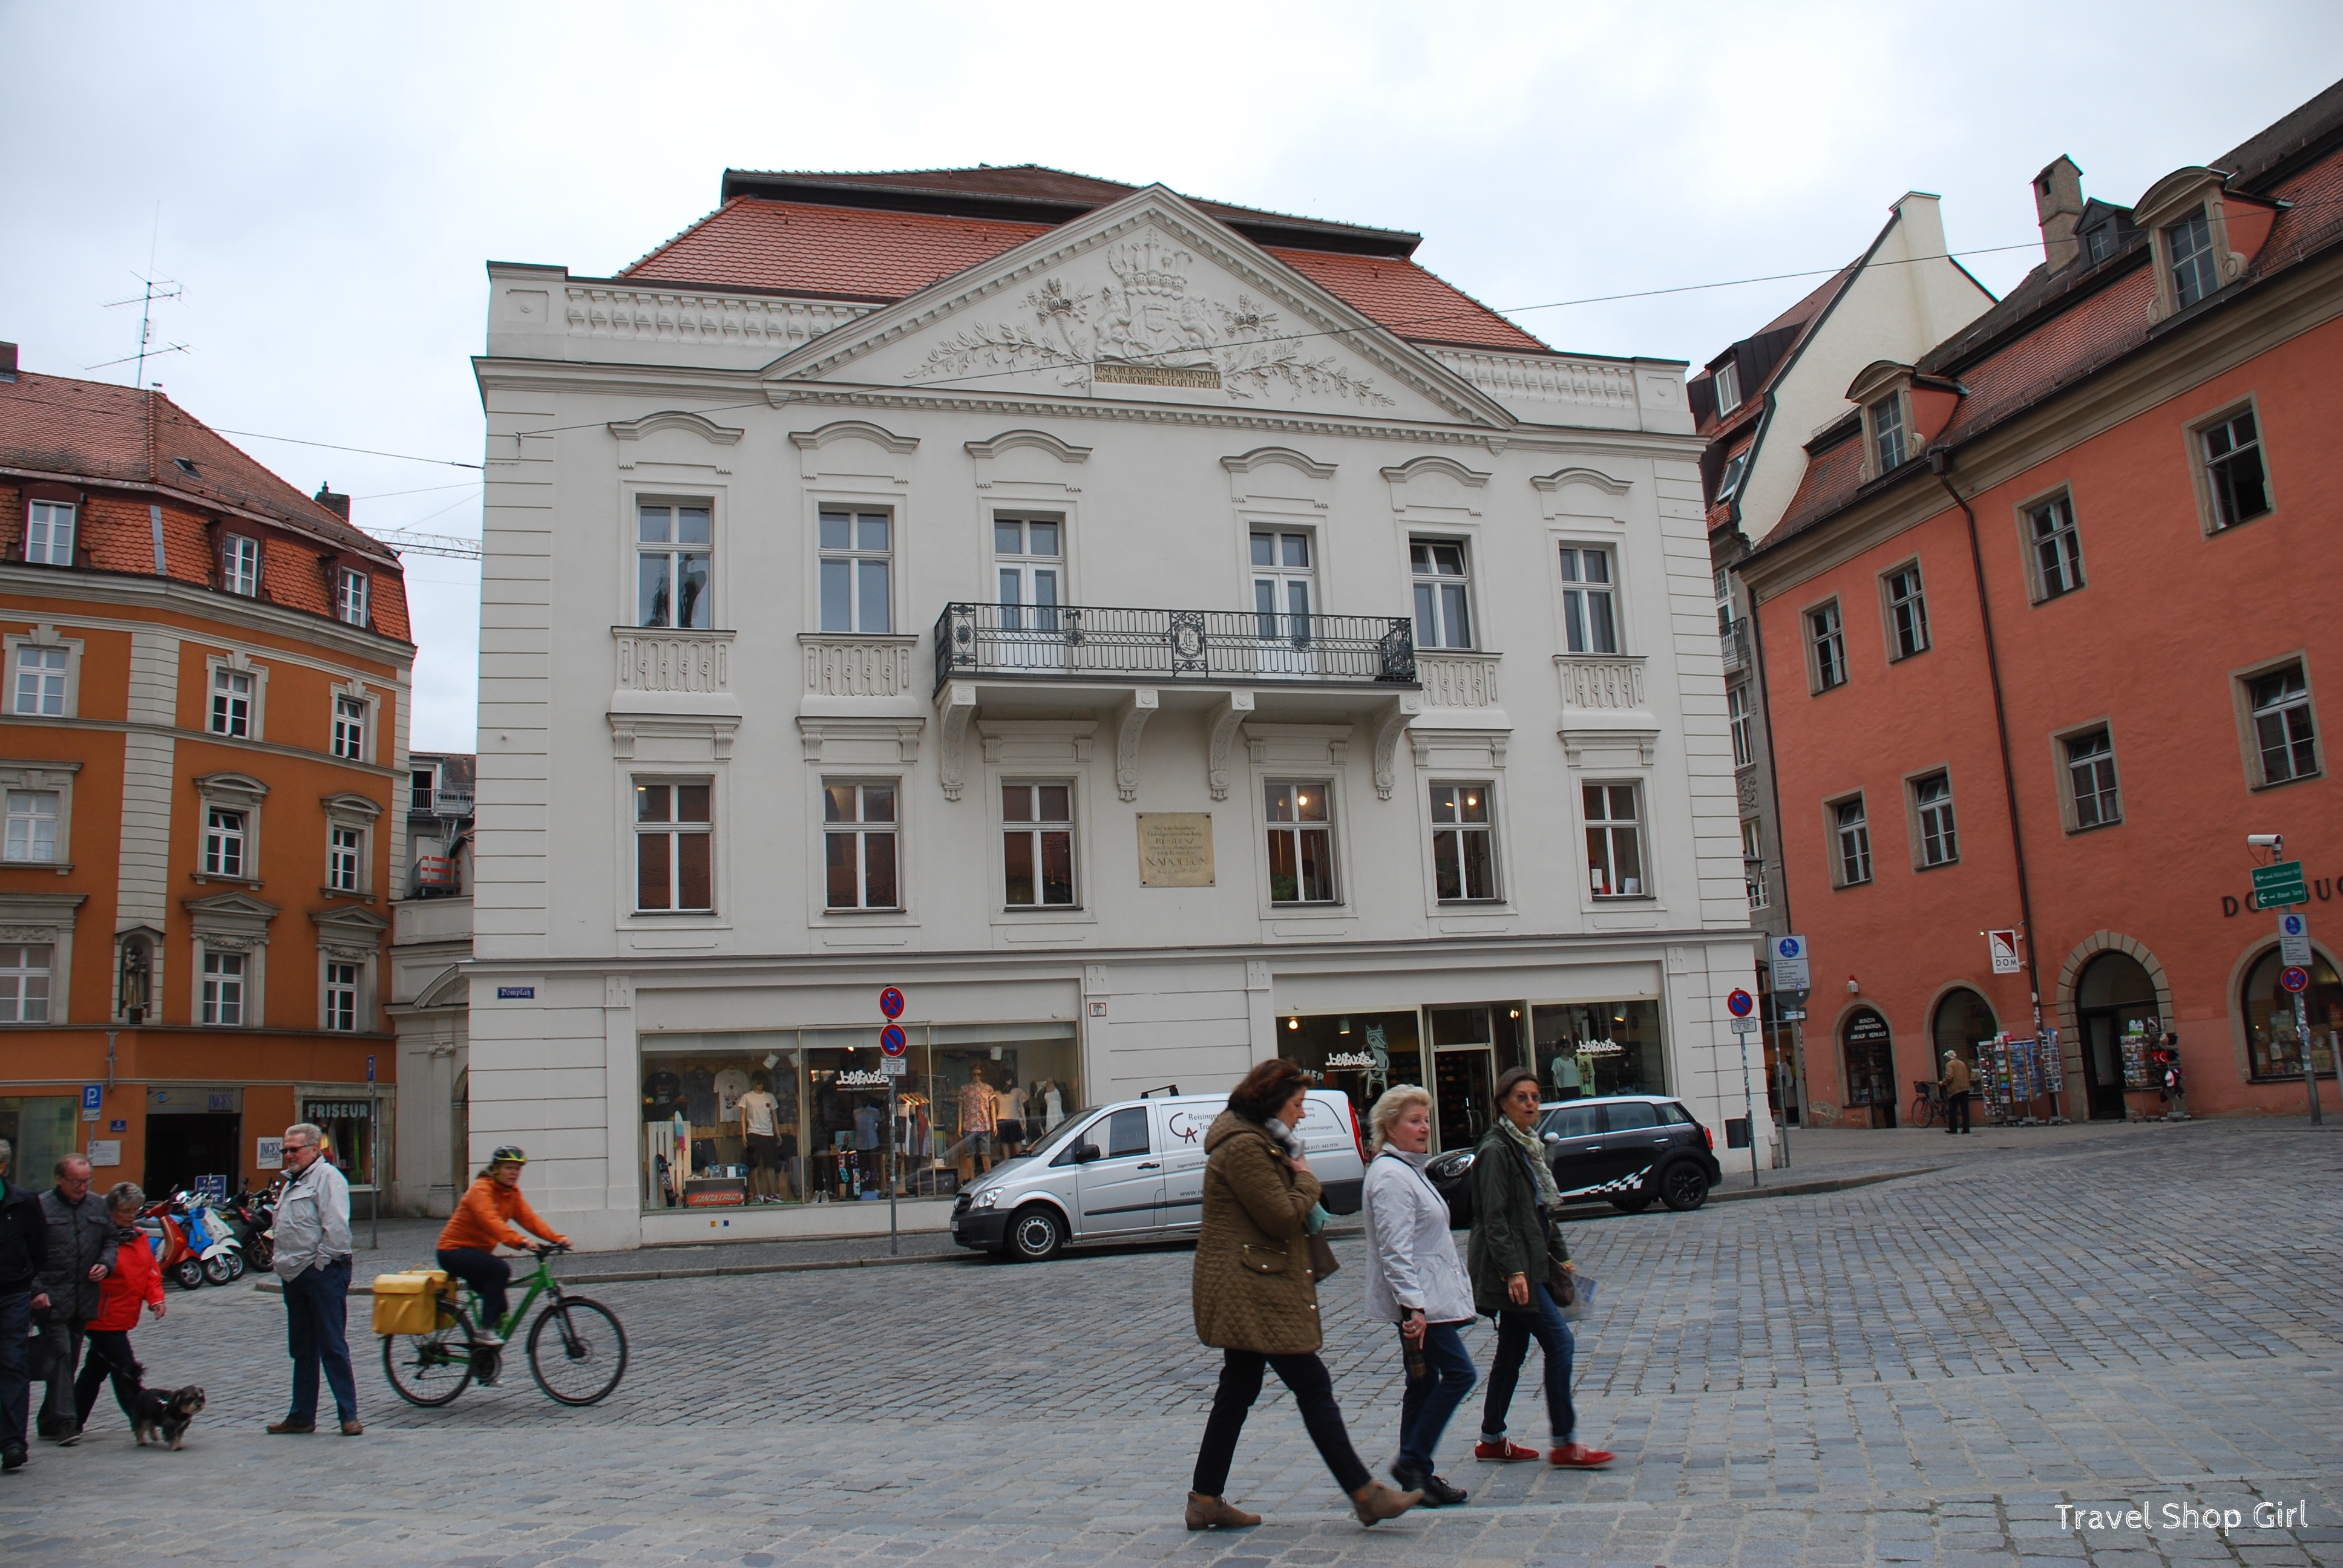 Visiting Regensburg on a River Cruise